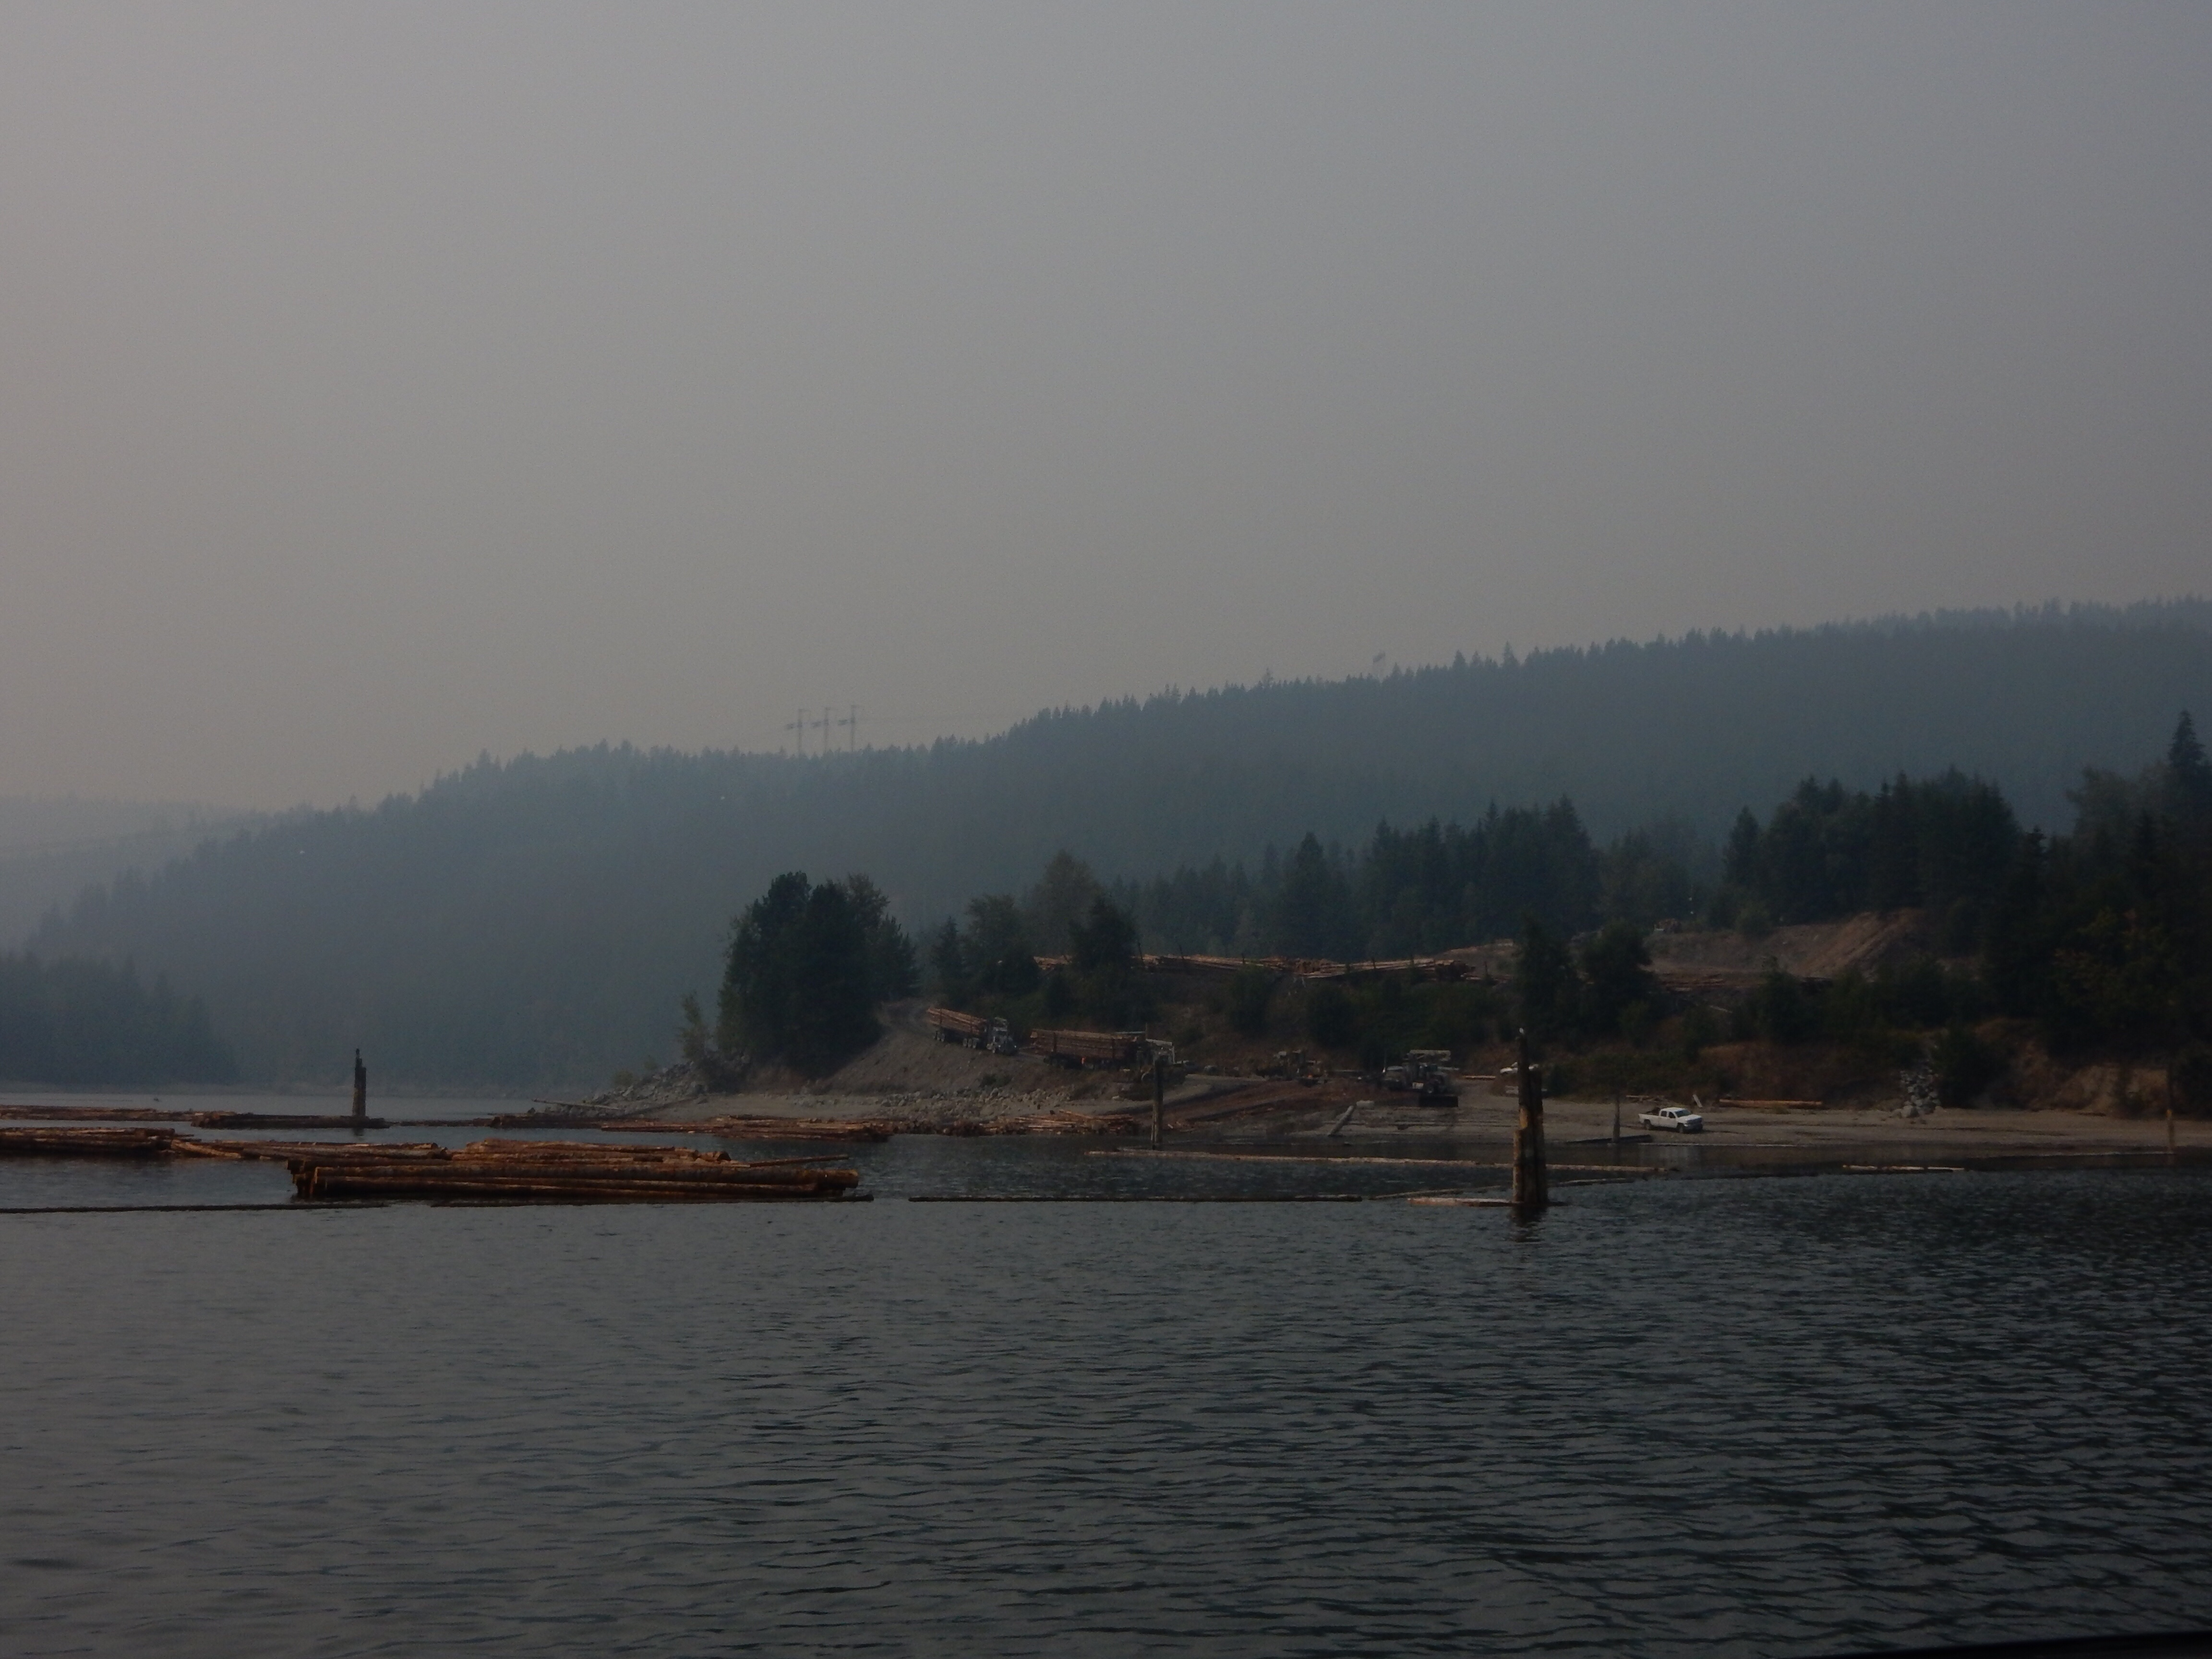 A float logging operation on the west bank of Arrow Lake, as seen from the Needles ferry.